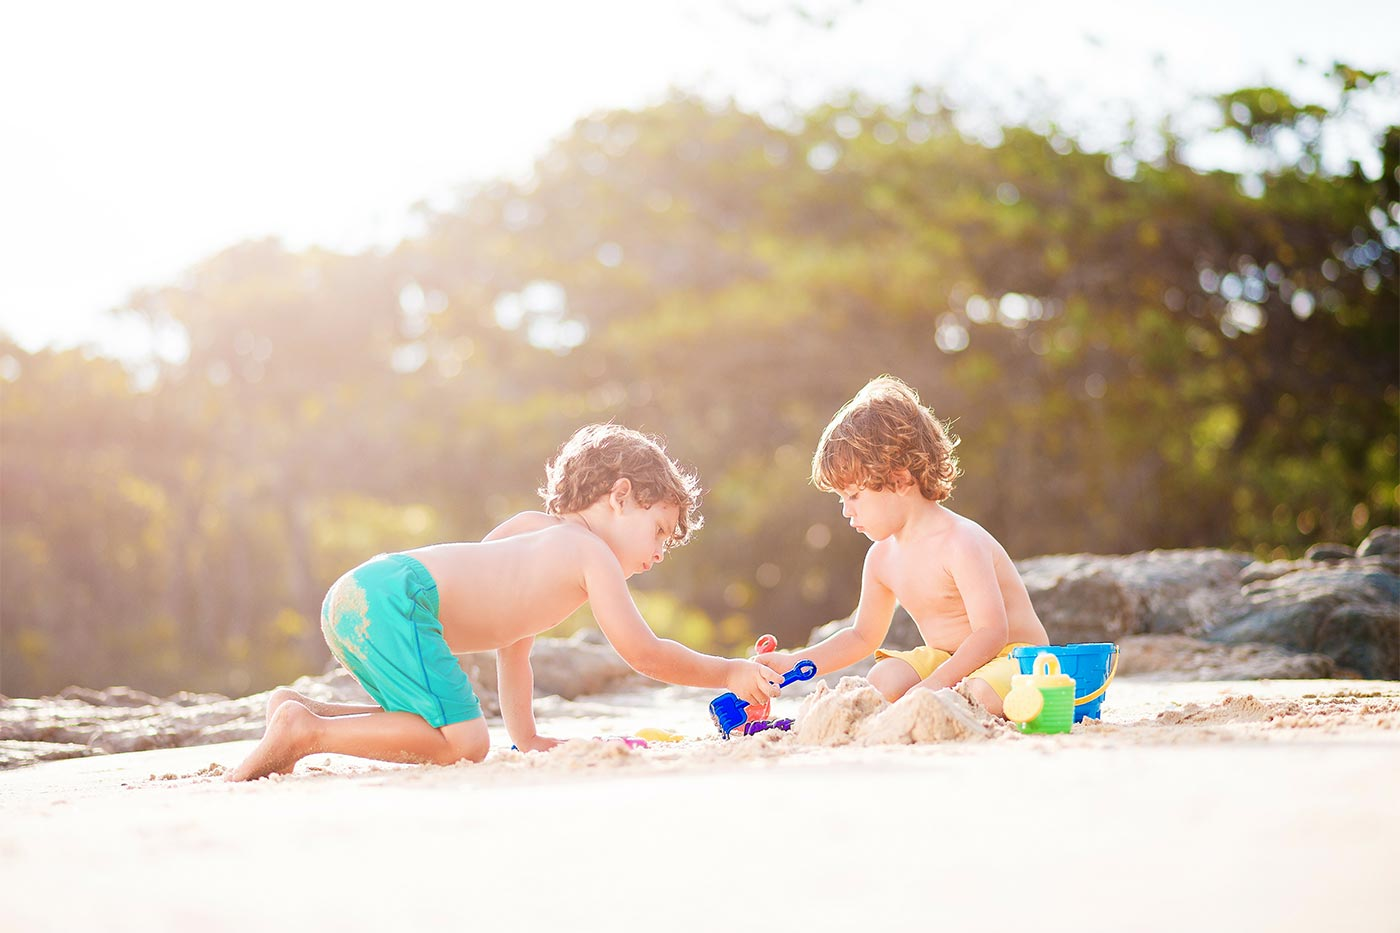 Brothers sharing toys on a beach